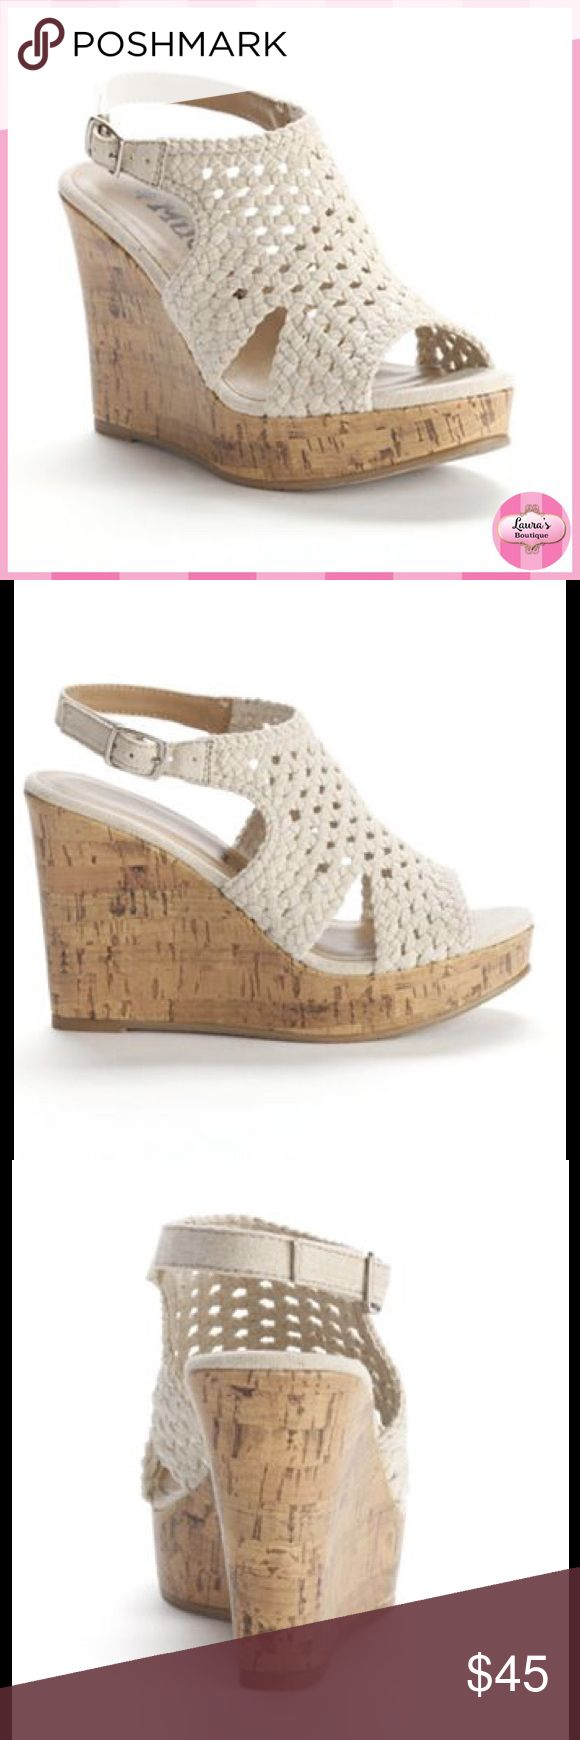 LAST‼️ MUDD Cream Crochet Wedge Sandals HP NWT (IN BOX) Mudd cream crochet wedge sandals are the season's must-have!  *Crochet upper *Fabric upper *Manmade lining *Fabric/TPR outsole *Open toe *Buckle closure *Padded footbed *4 1/8-in. heel  *Bundle Discounts * No Trades * Smoke free Mudd Shoes Wedges